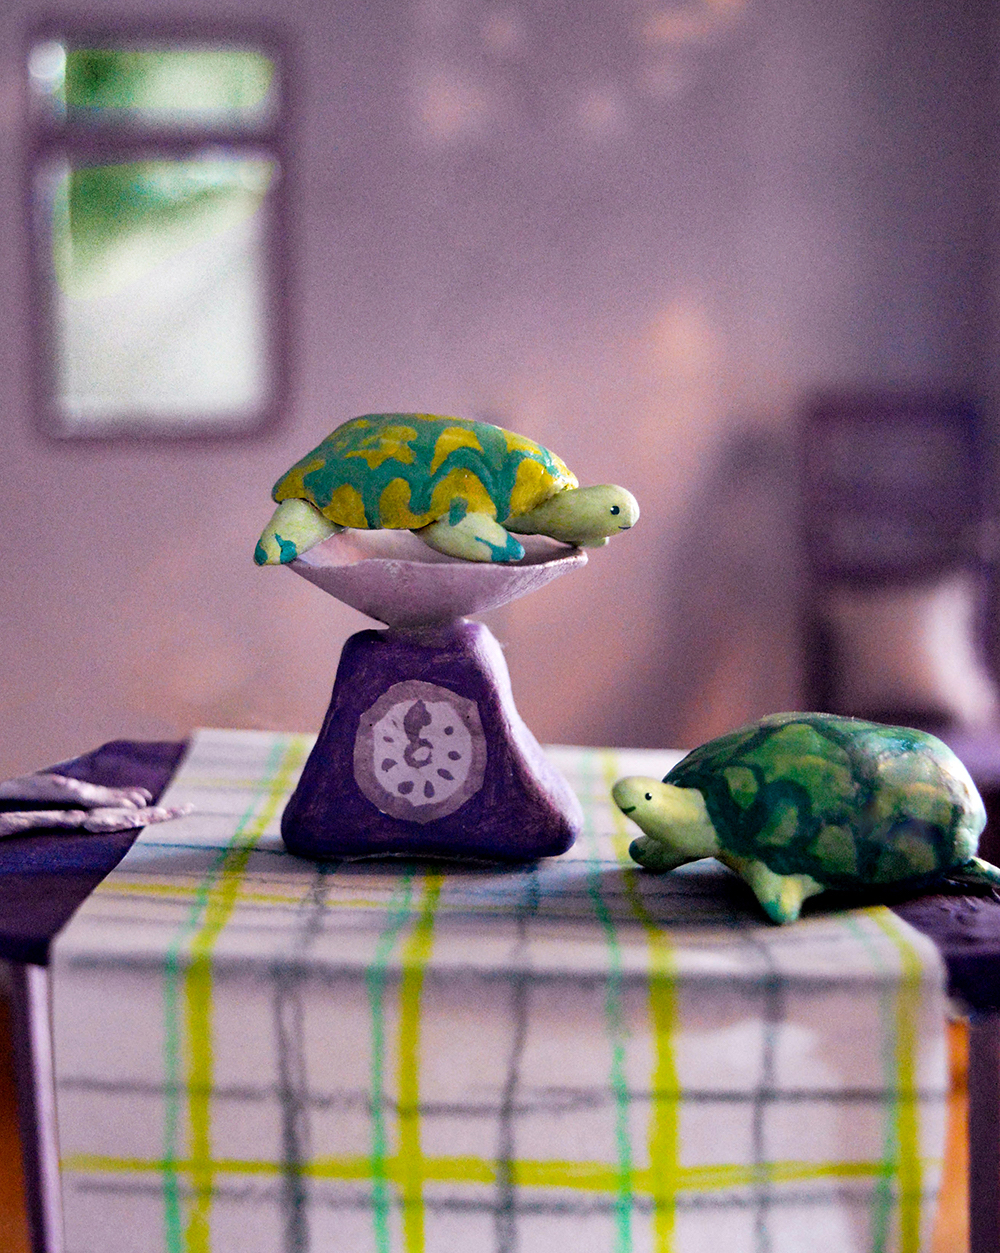 Tortoise On Scales for Esio Trot by Rosie Hurley